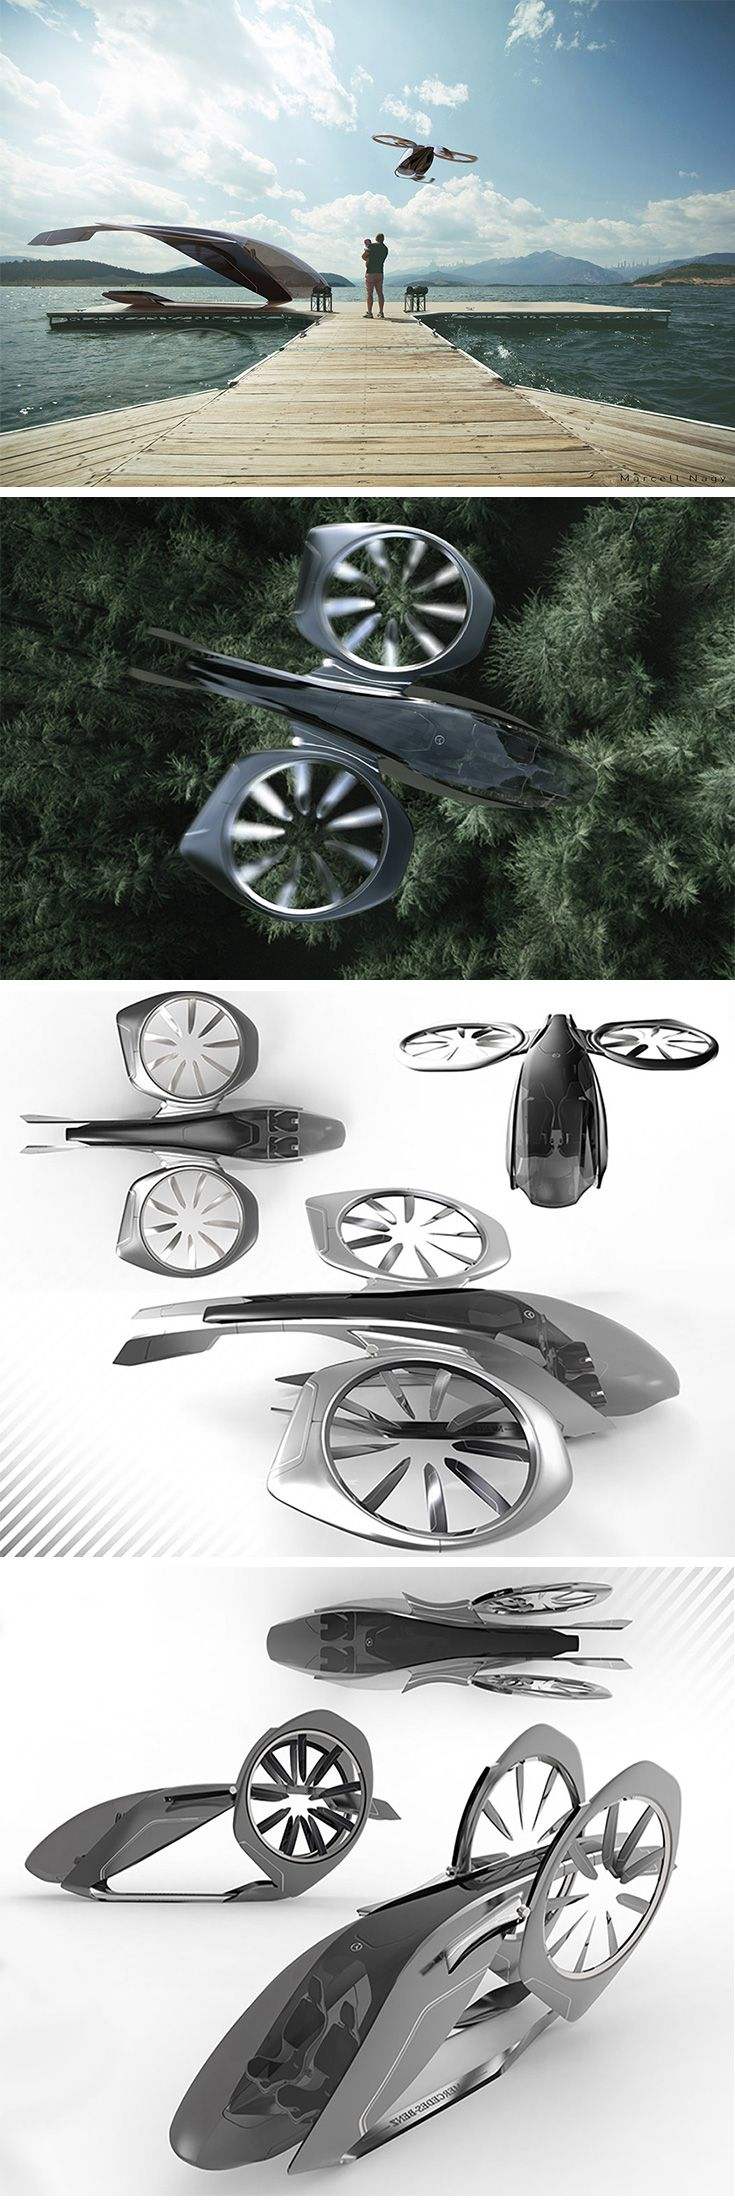 Sky2Go Represents the future of ride-sharing, this drone concept applies the Mercedes Benz design language to put passengers in the lap of luxury as they travel. The autonomous system makes it possible to pick up and drop off at precise locations and shortens travel distance and commuting time by avoiding busy roadways.